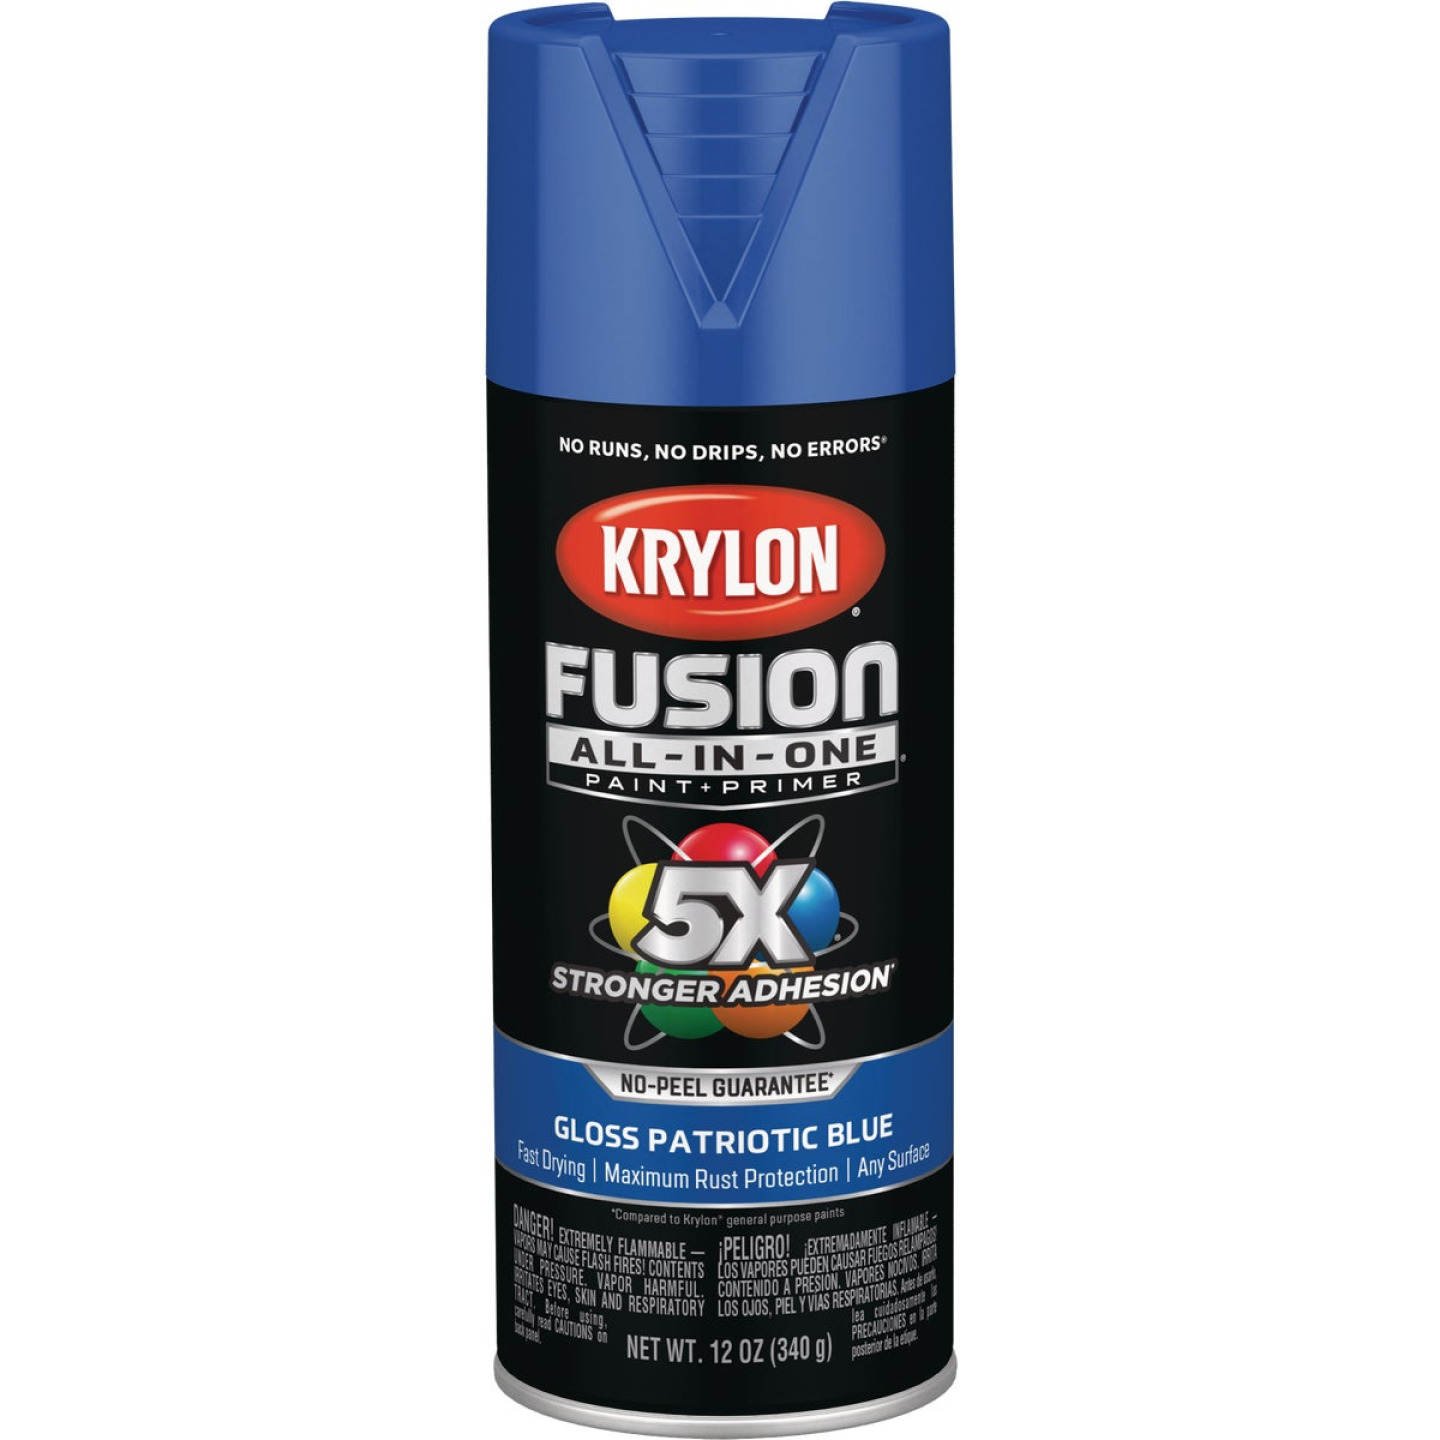 Krylon Fusion All-In-One Gloss Spray Paint & Primer, Patriotic Blue Image 1